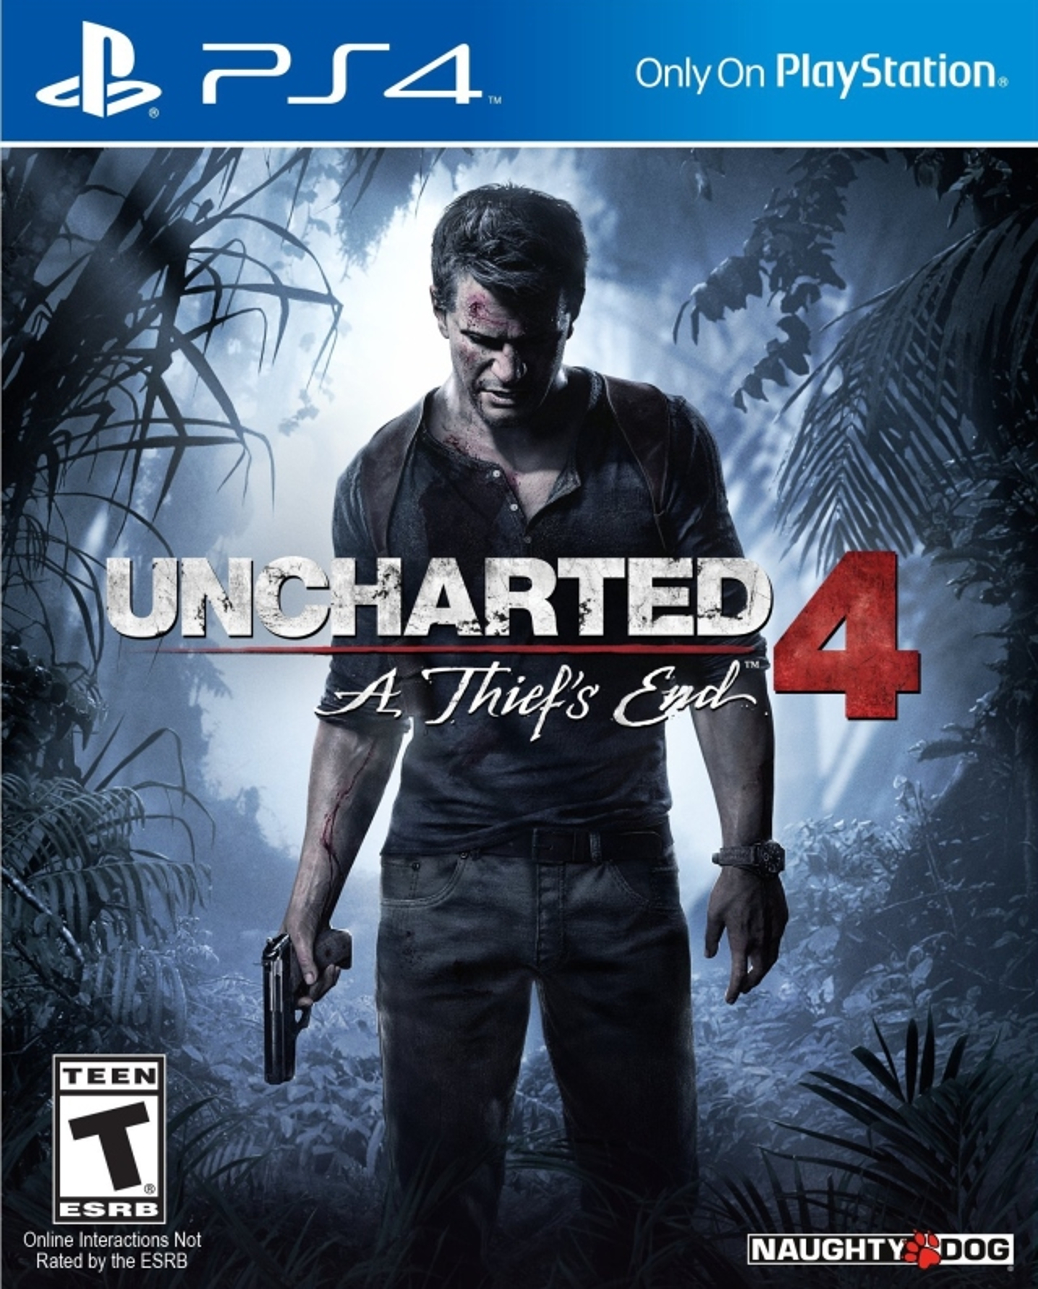 Uncharted 4 A Thief's End - PlayStation 4 - North American Cover